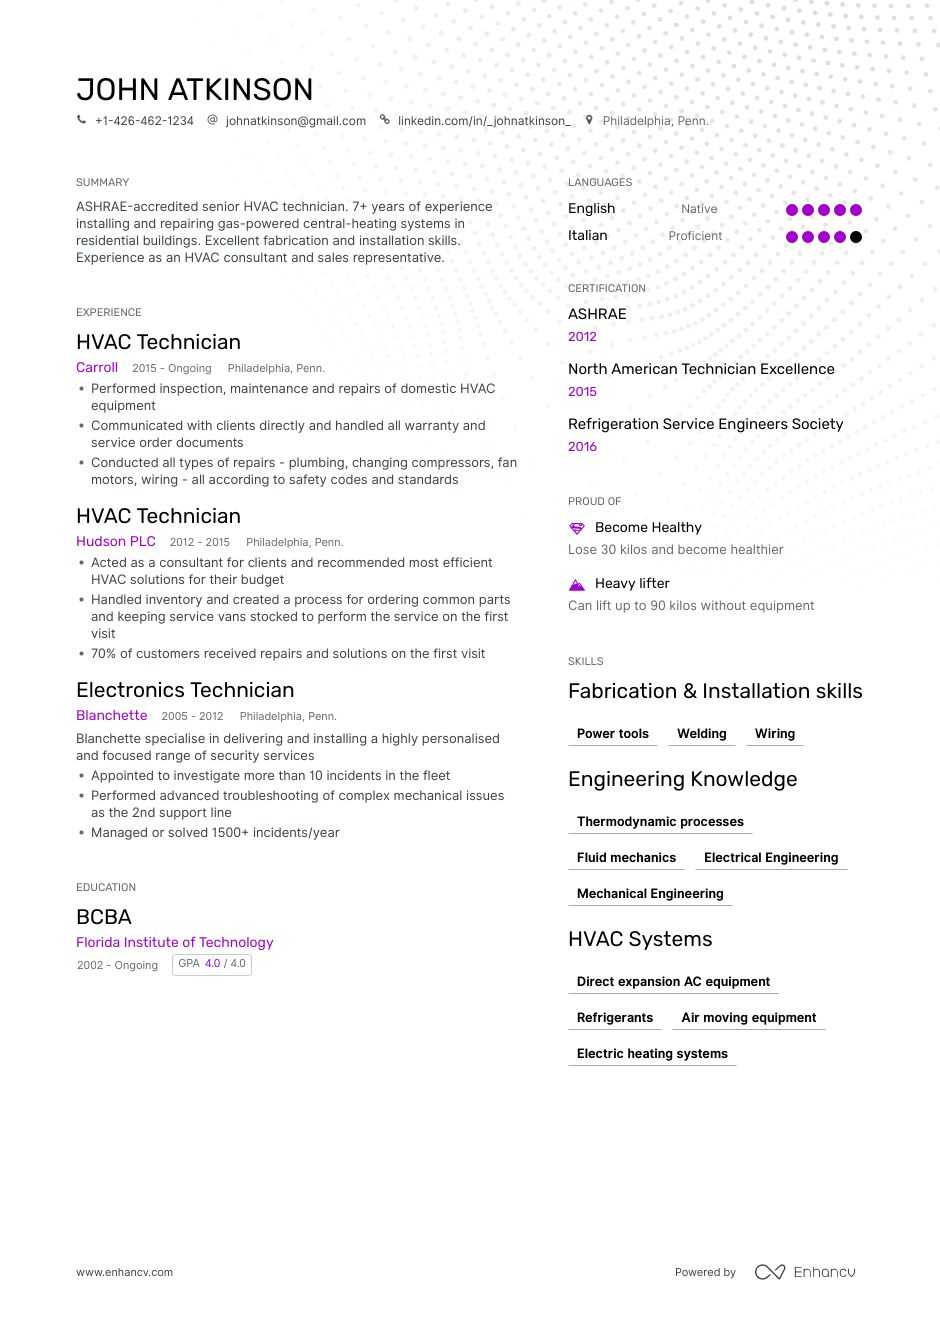 hvac resume samples and writing guide for enhancv air conditioning technician creative Resume Resume For Air Conditioning Technician